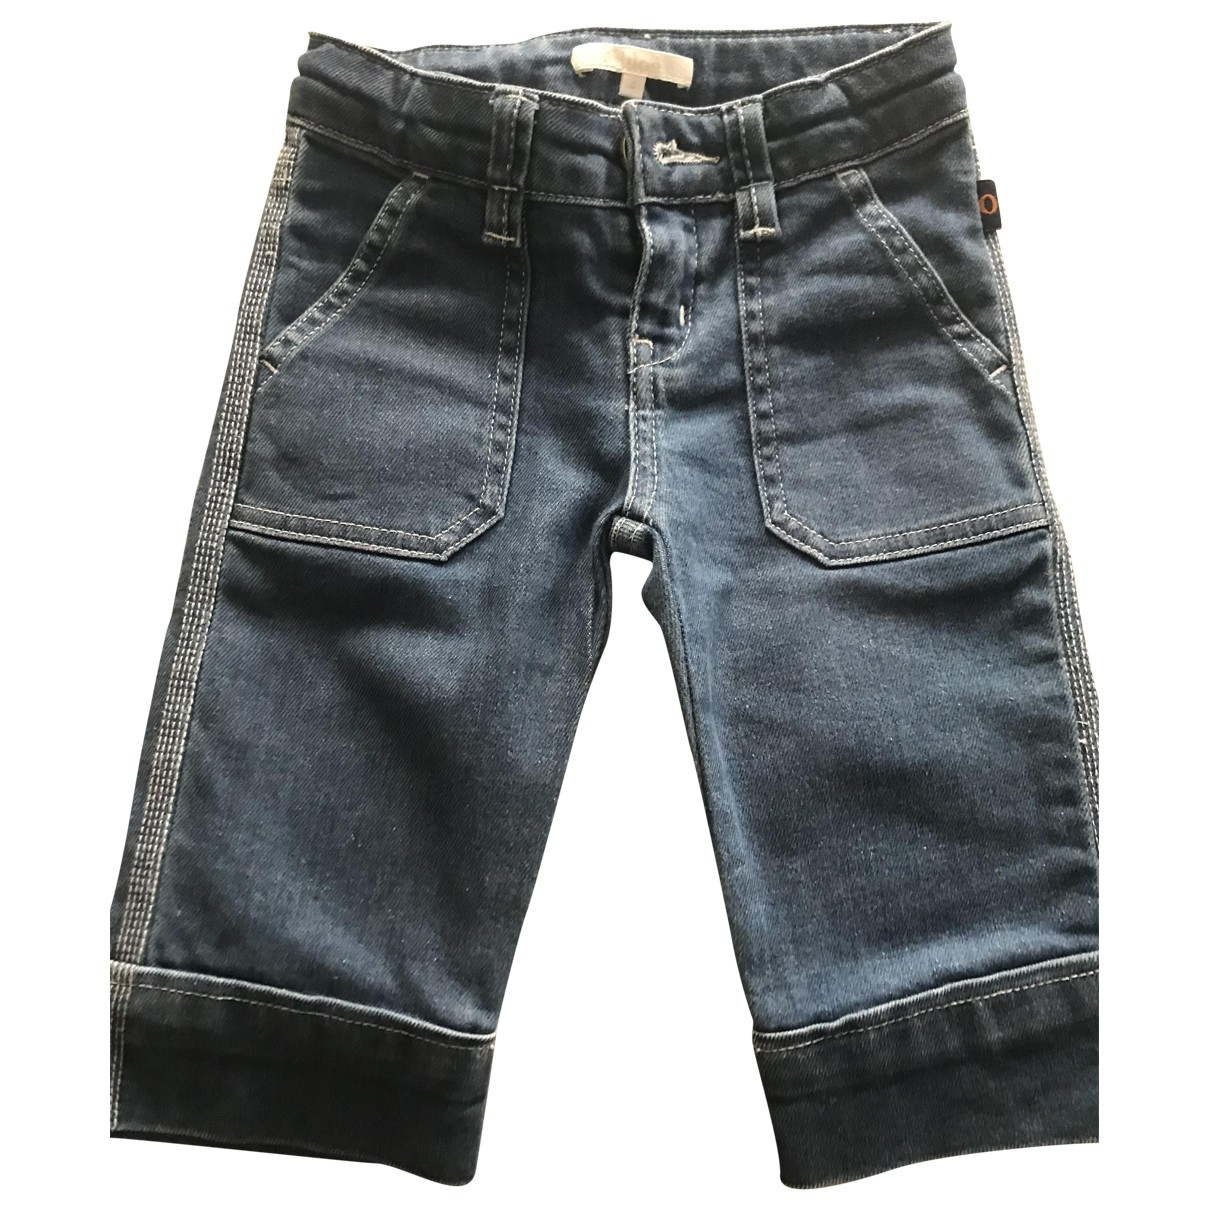 Chloé \N Blue Cotton Trousers for Kids 4 years - up to 102cm FR